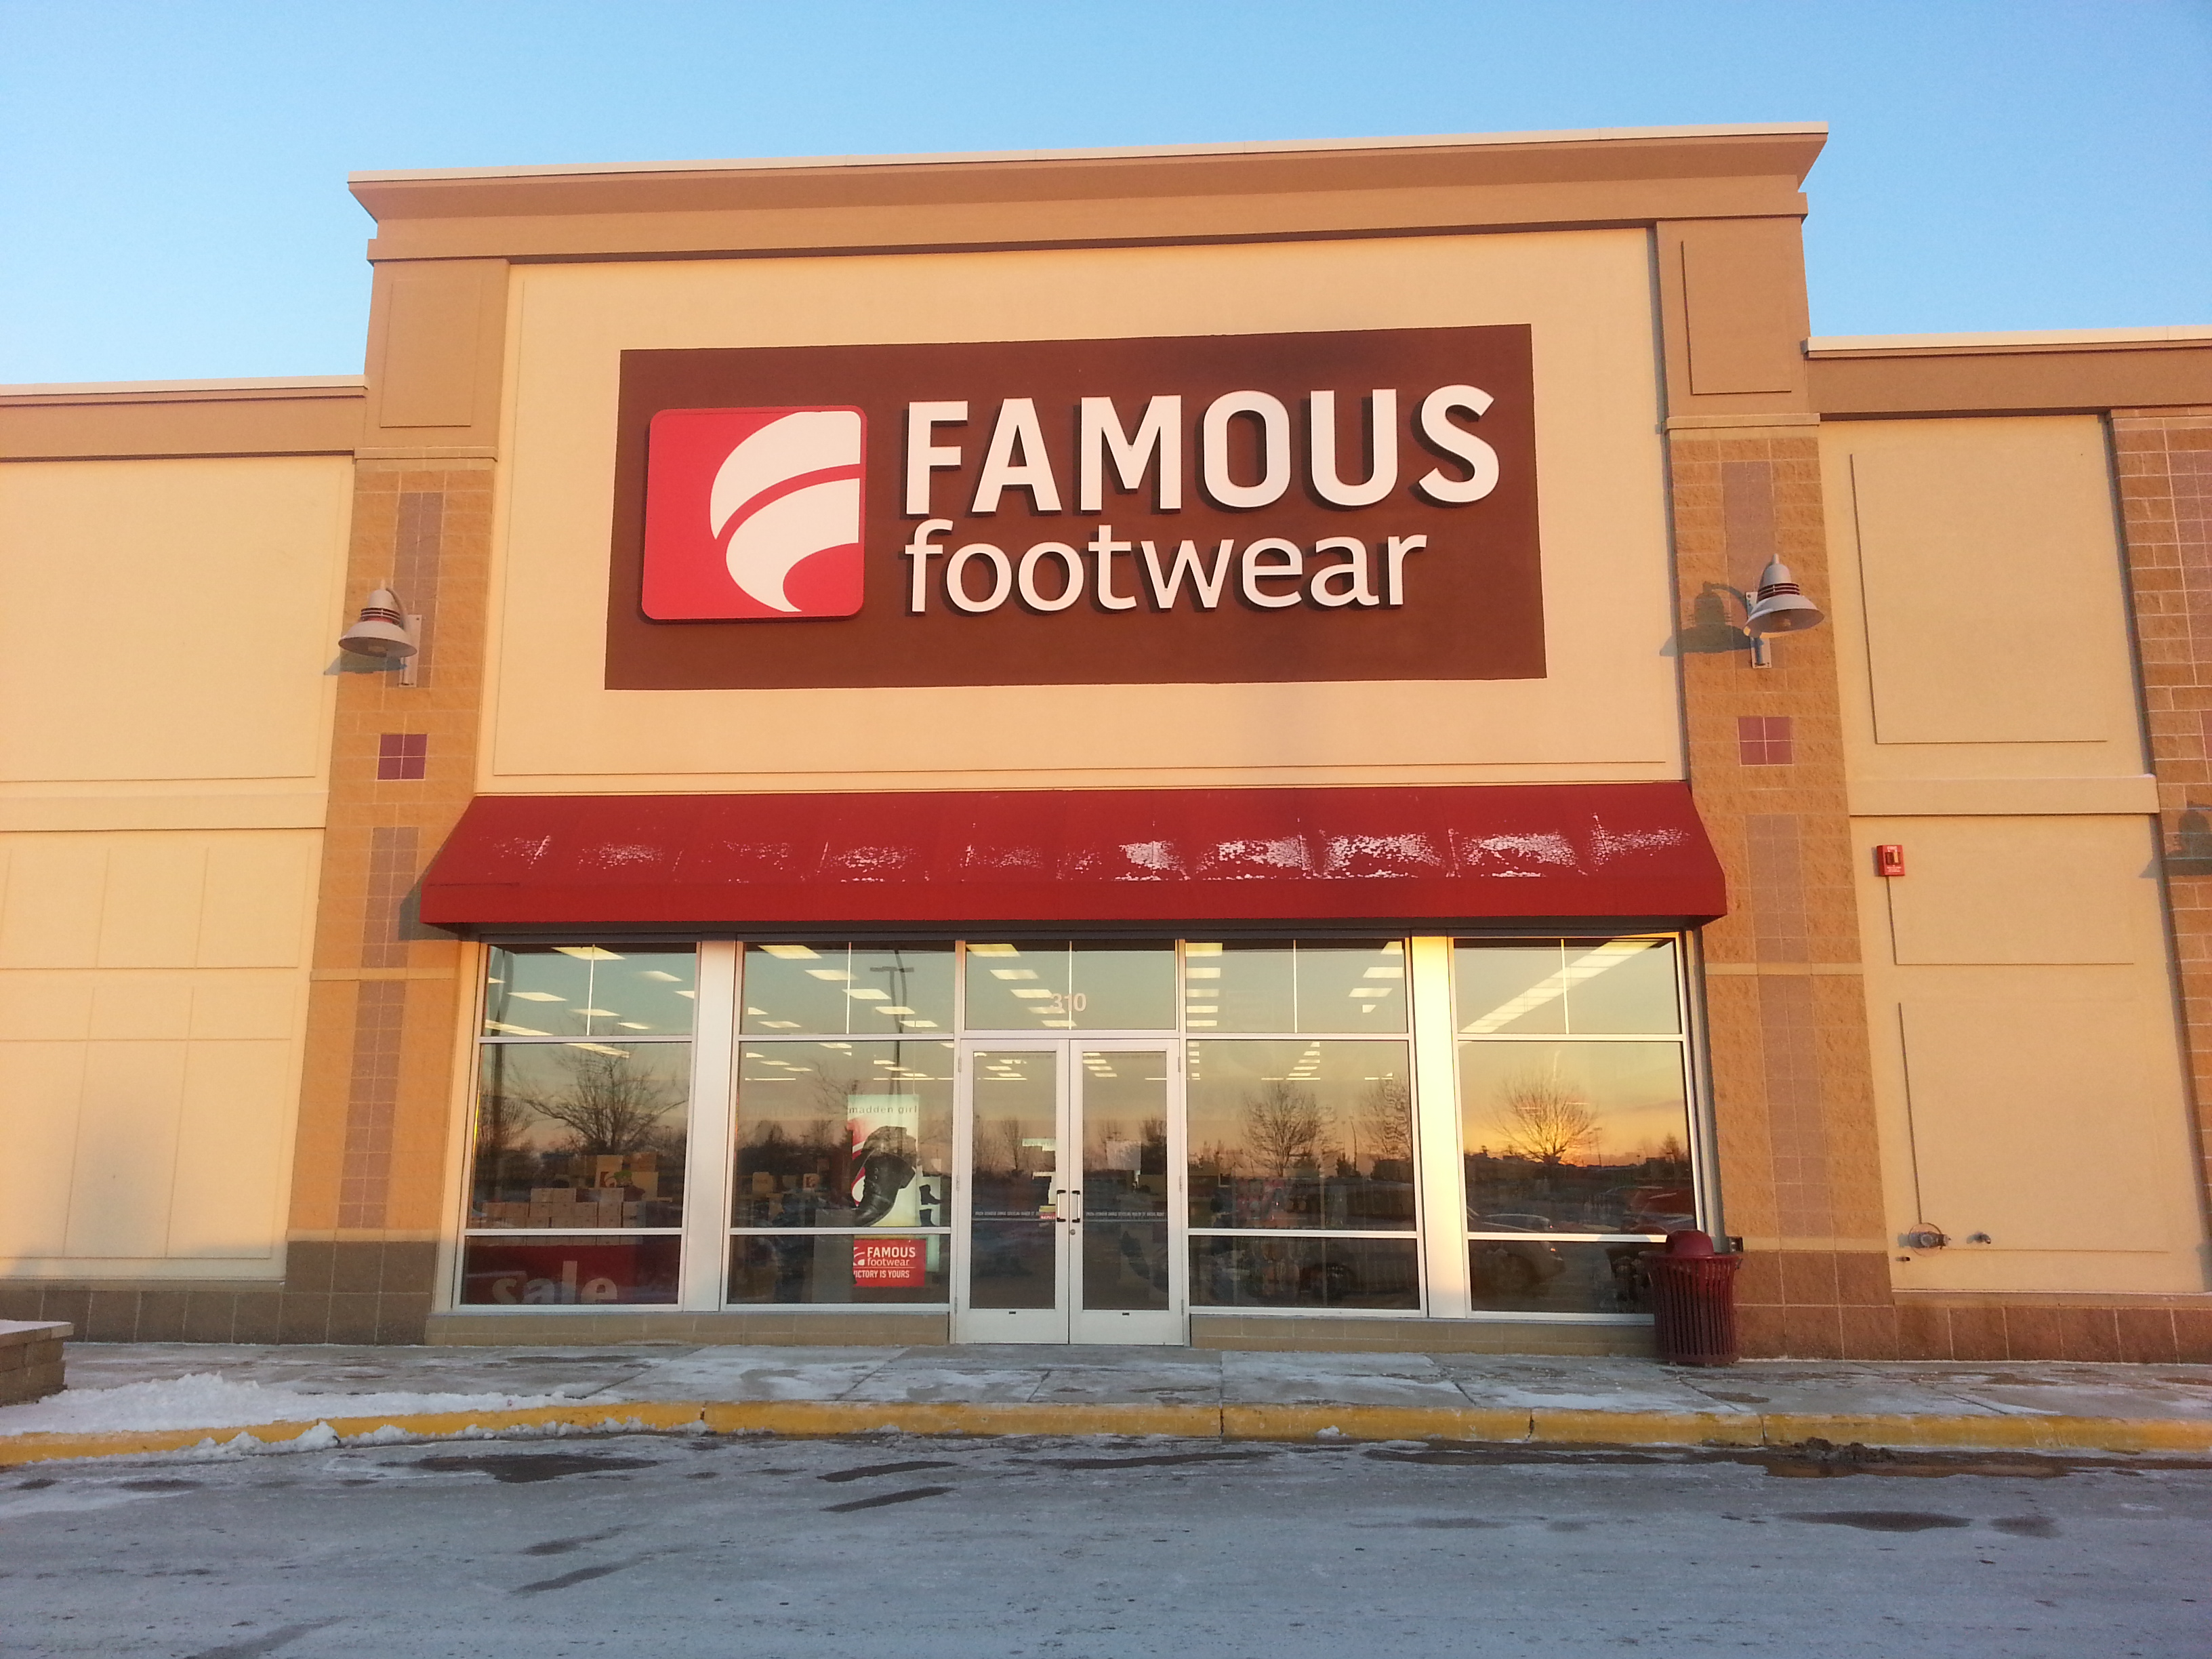 10 items · Famous Footwear locations in San Diego County, CA (San Diego, Carlsbad, El Cajon, Encinitas, ) No street view available for this location. 1. FAMOUS FOOTWEAR: POINT LOMA PLAZA respresentatives - respond and add information. Add review. 9. FAMOUS FOOTWEAR: SANTEE TROLLEY SQUARE.